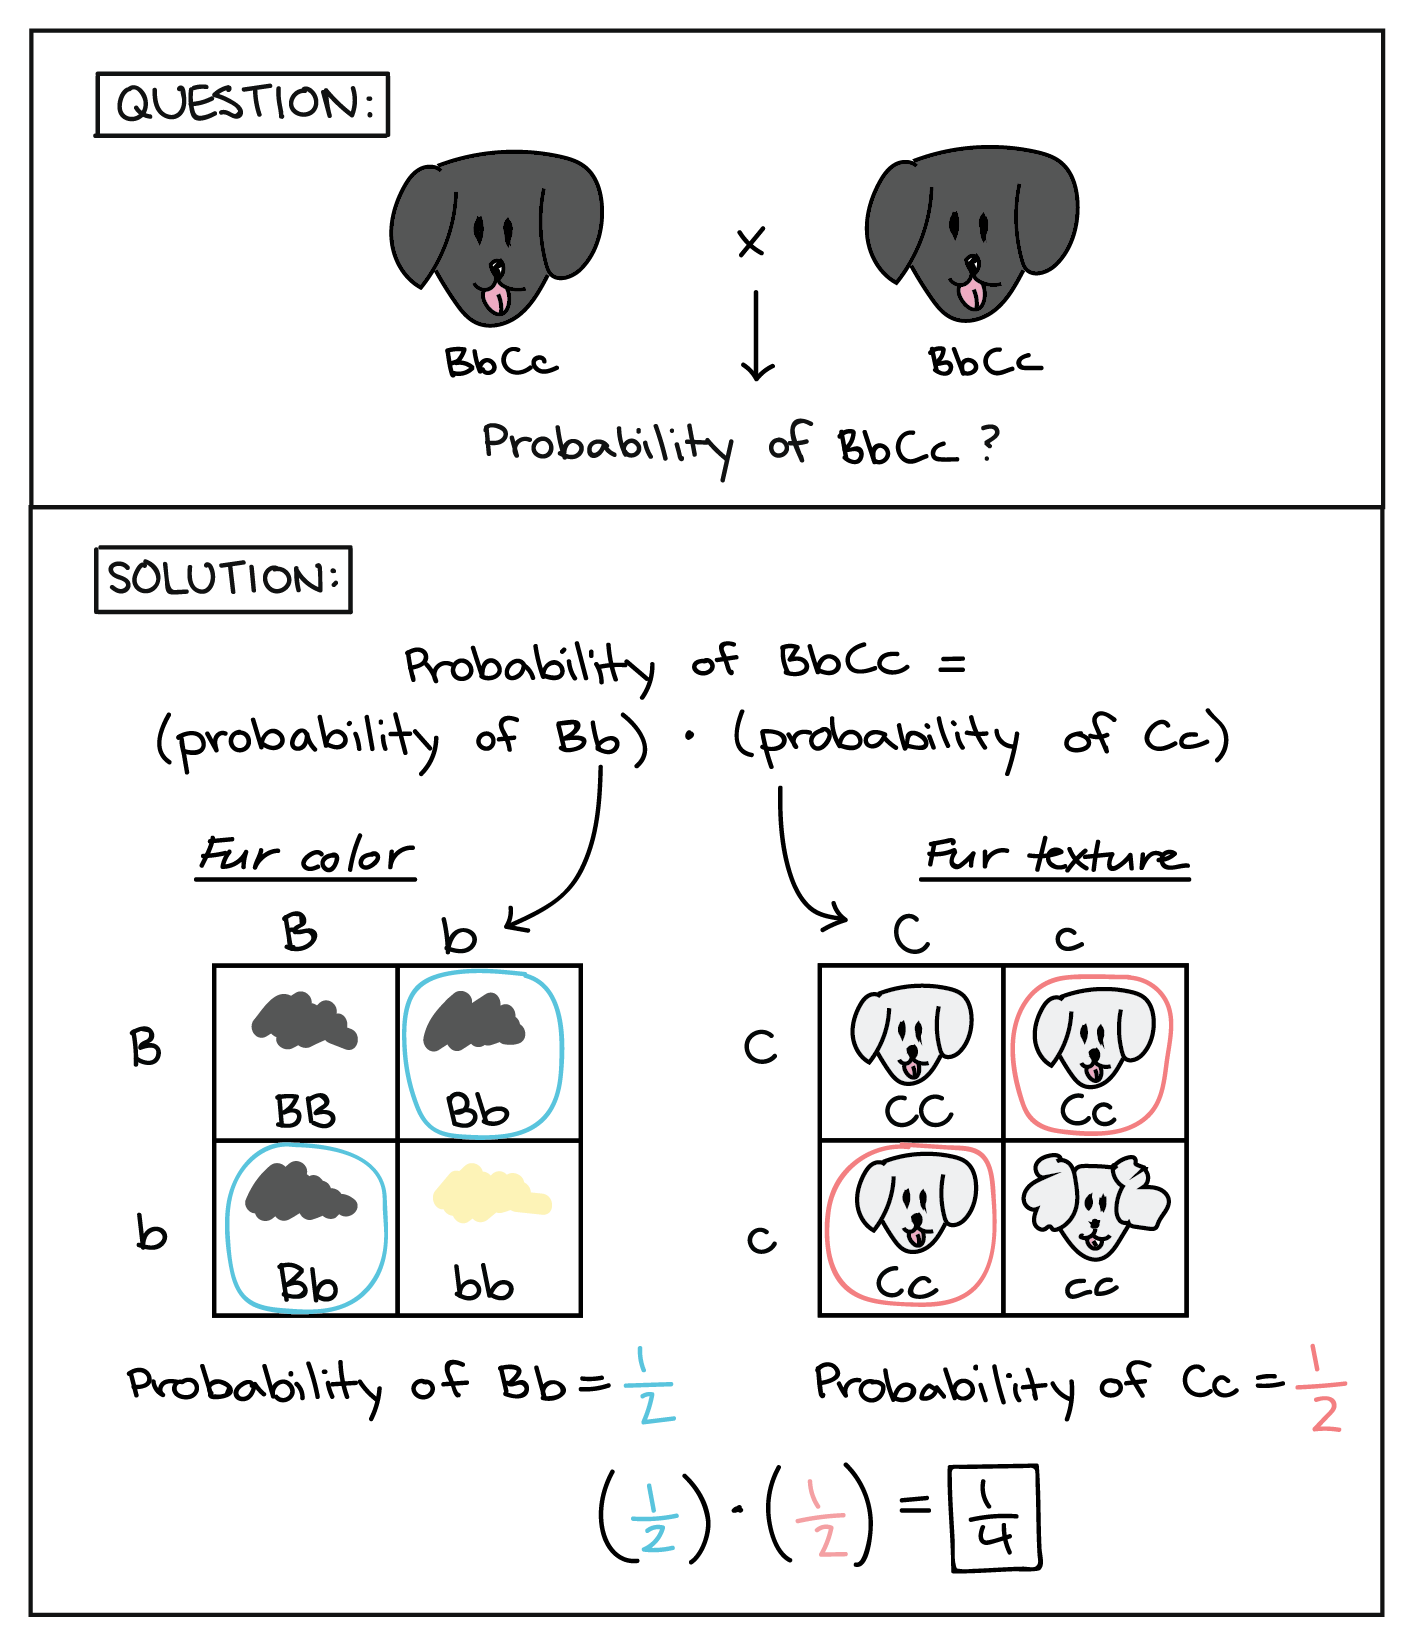 worksheet Punnett Square Problems Worksheet probabilities in genetics article khan academy diagram illustrating how 2x2 punnett squares can be used conjunction with the product rule to determine probability of a particular genotype